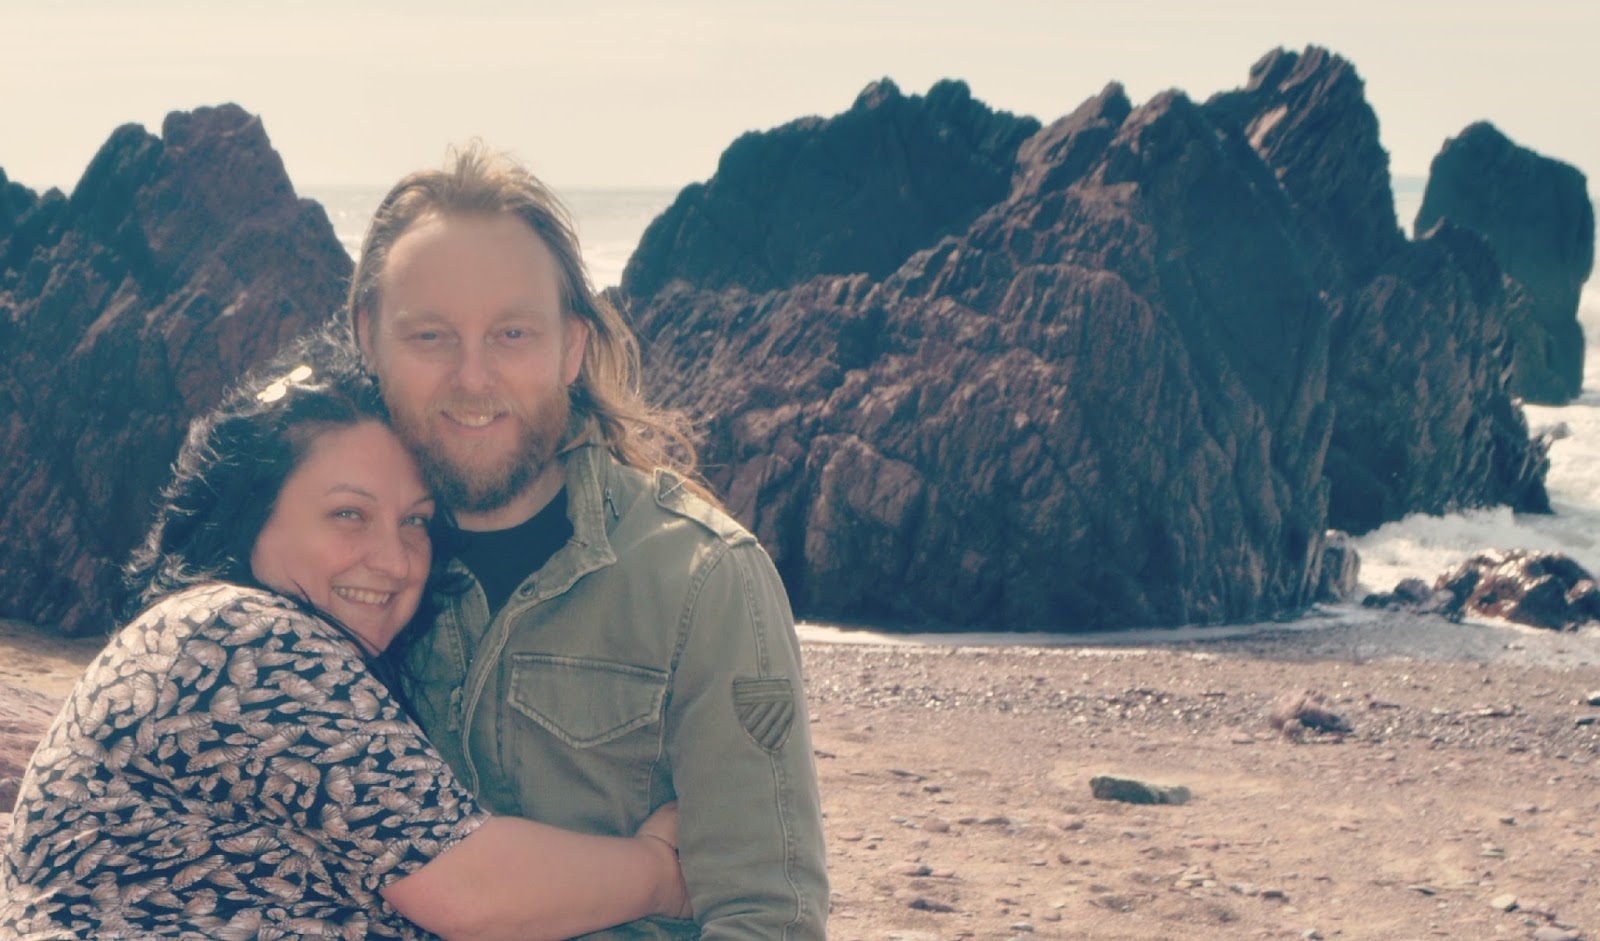 Me and You Linky Couples photography April West Dale Beach pembrokeshire